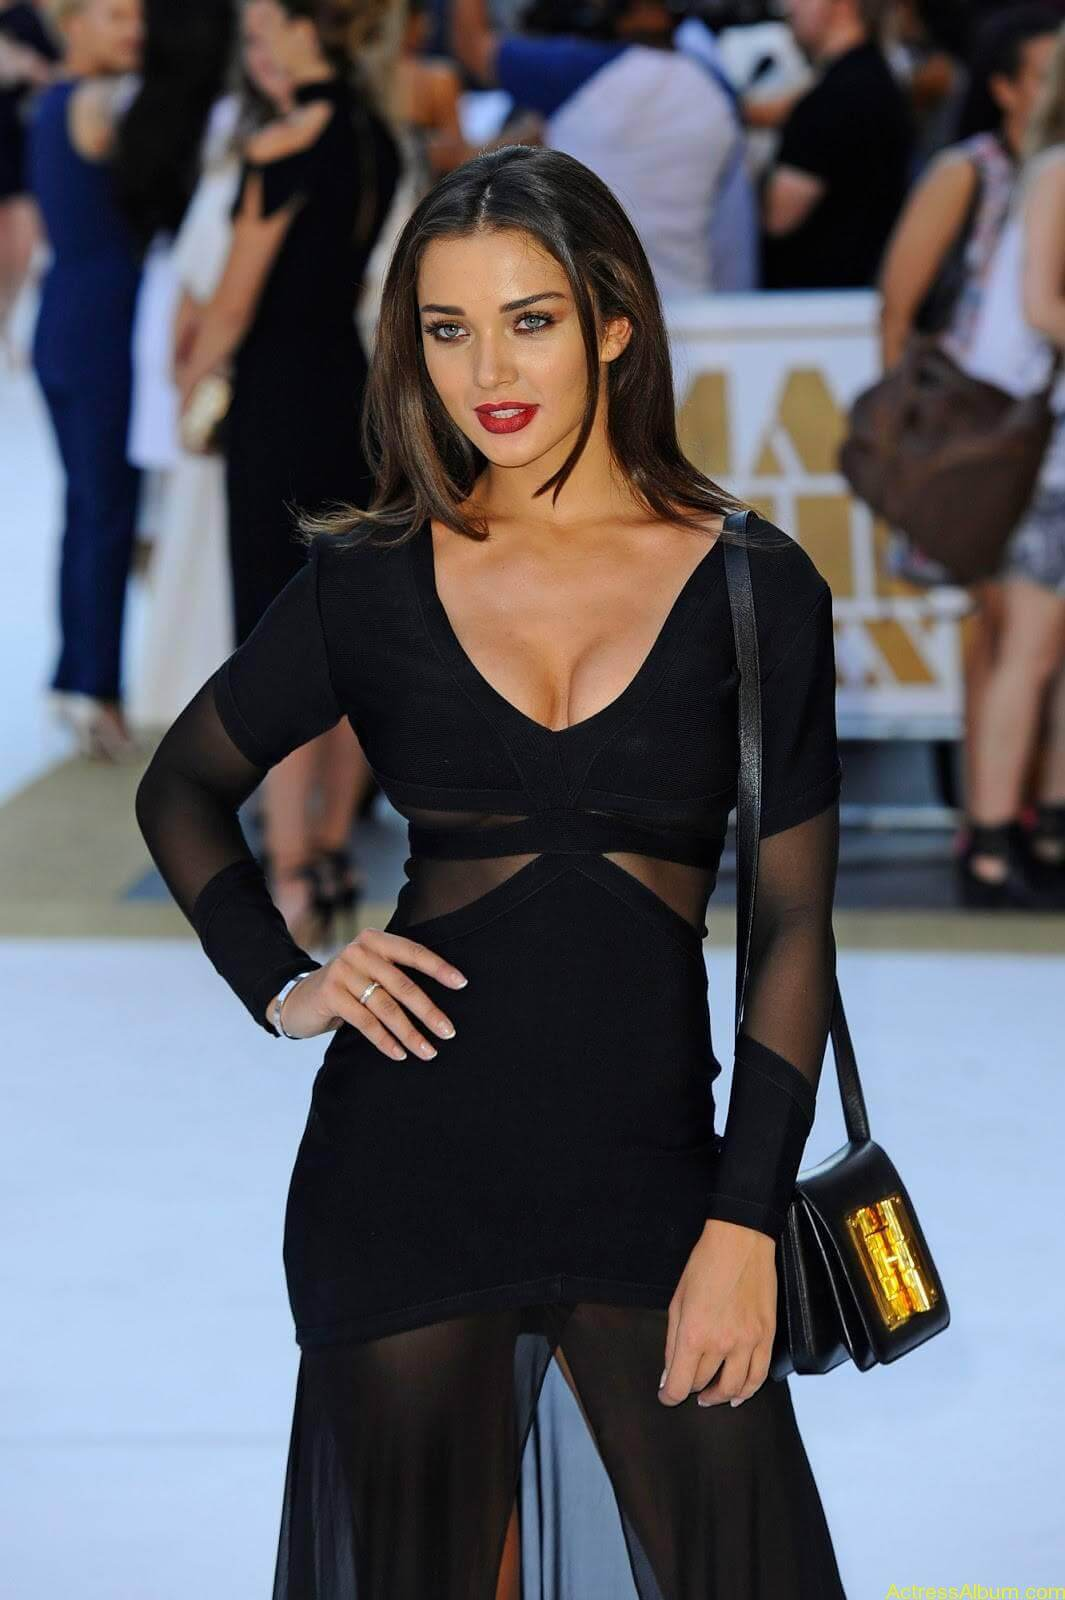 Amy-Jackson-Latest-Stills-Photos-Pictures-1